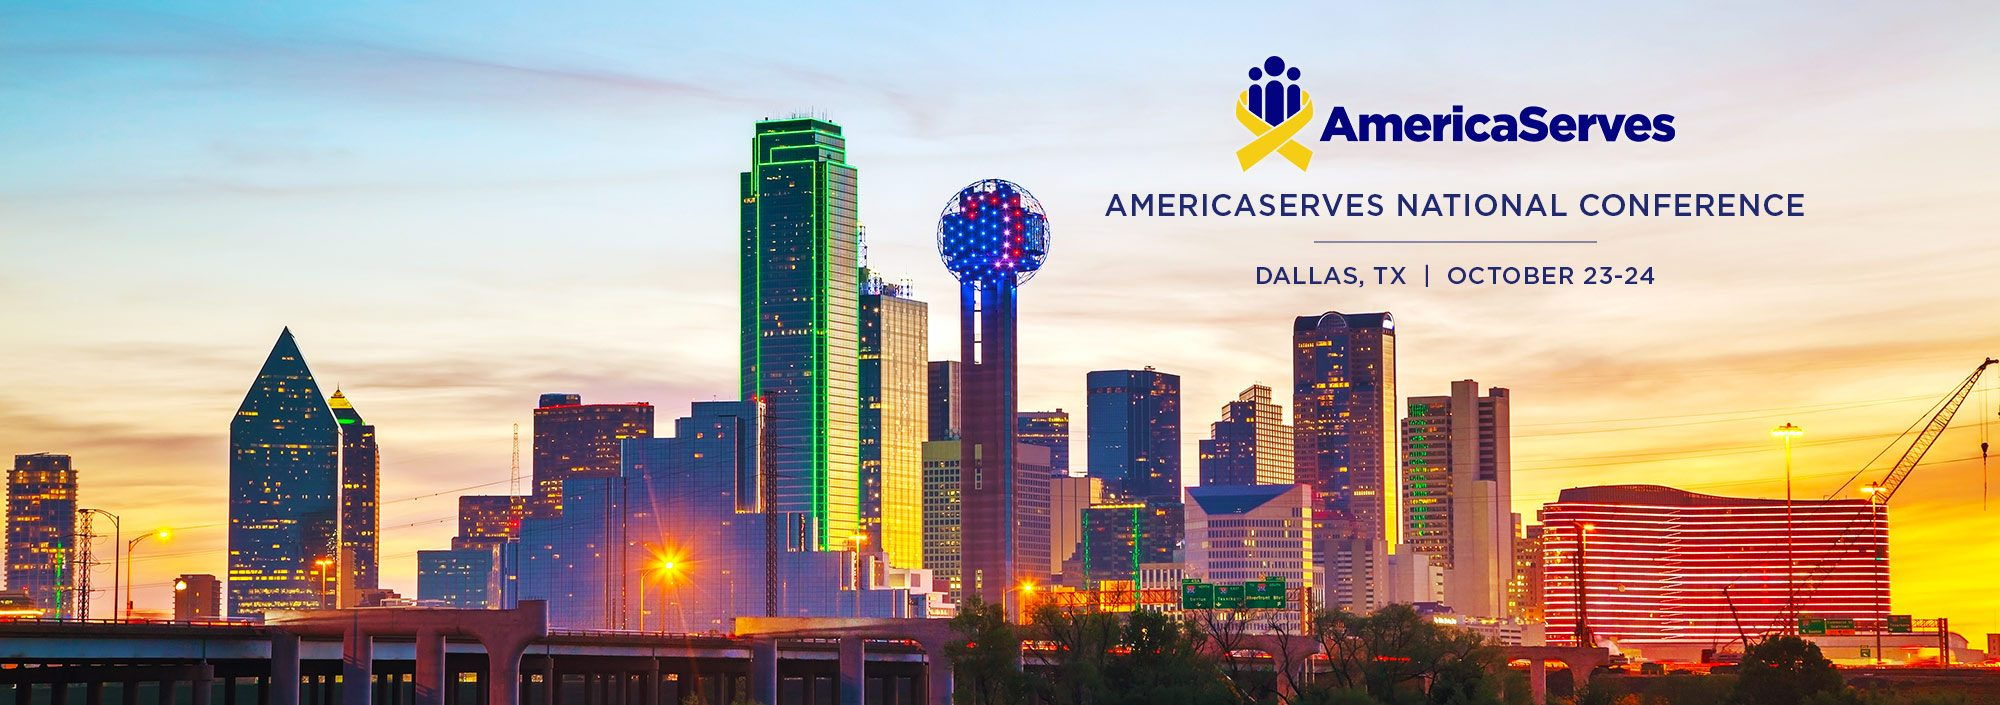 AmericaServes National Convention in Dallas, TX